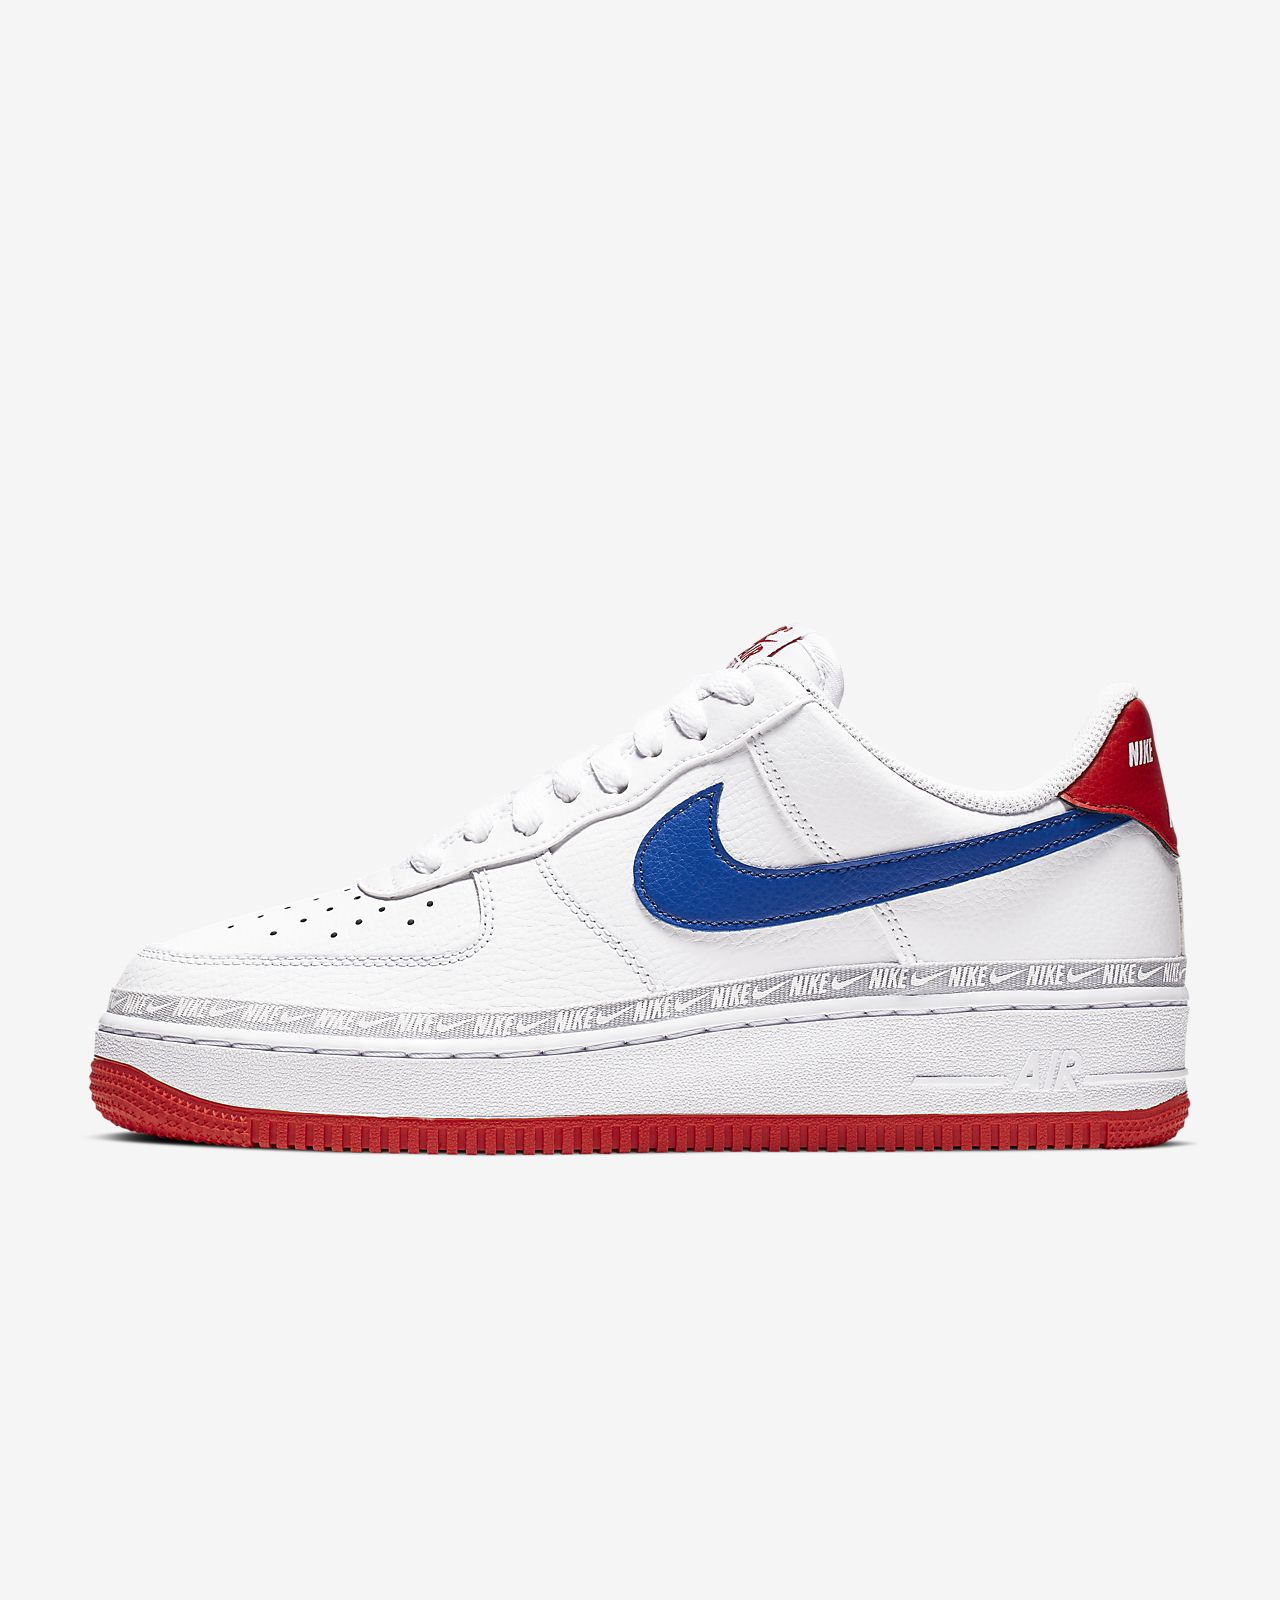 reputable site 2358b b8d8a ... Chaussure Nike Air Force 1  07 LV8 pour Homme